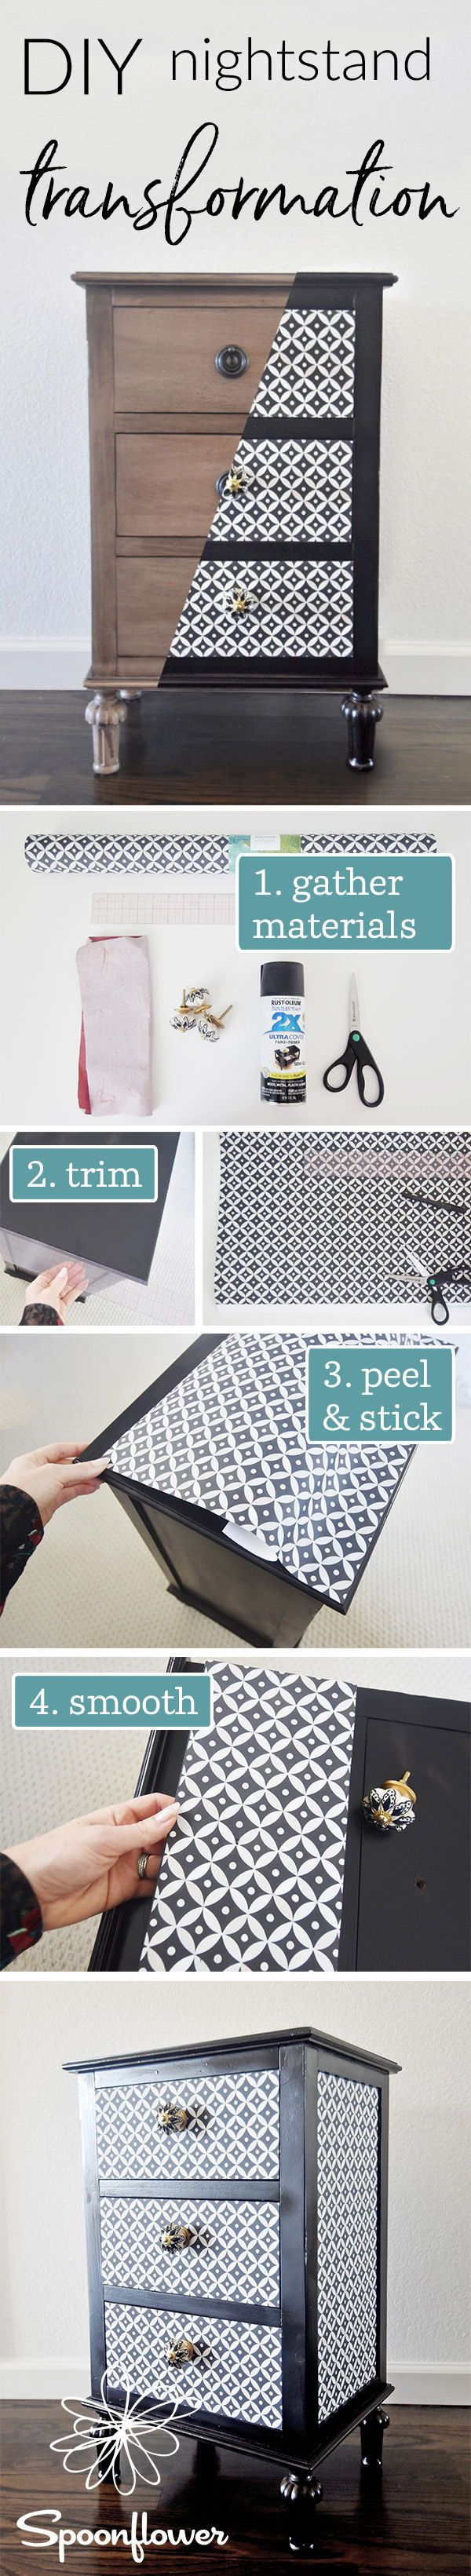 DIY Nightstand Transformation - Revamp a Nightstand with Wallpaper - Follow along with this easy diy tutorial to see the easy steps to turning a drab nightstand into a bold piece of furniture that pops.  Stephanie from The Style Safari takes us through every step of her process of using peel and stick wallpaper to create this bold geometric Moroccan inspired nightstand.  Click to see all the steps of this nightstand transformation.  #diy #easydiy #tutorial #wallpaper #beforeandafter #diyhome